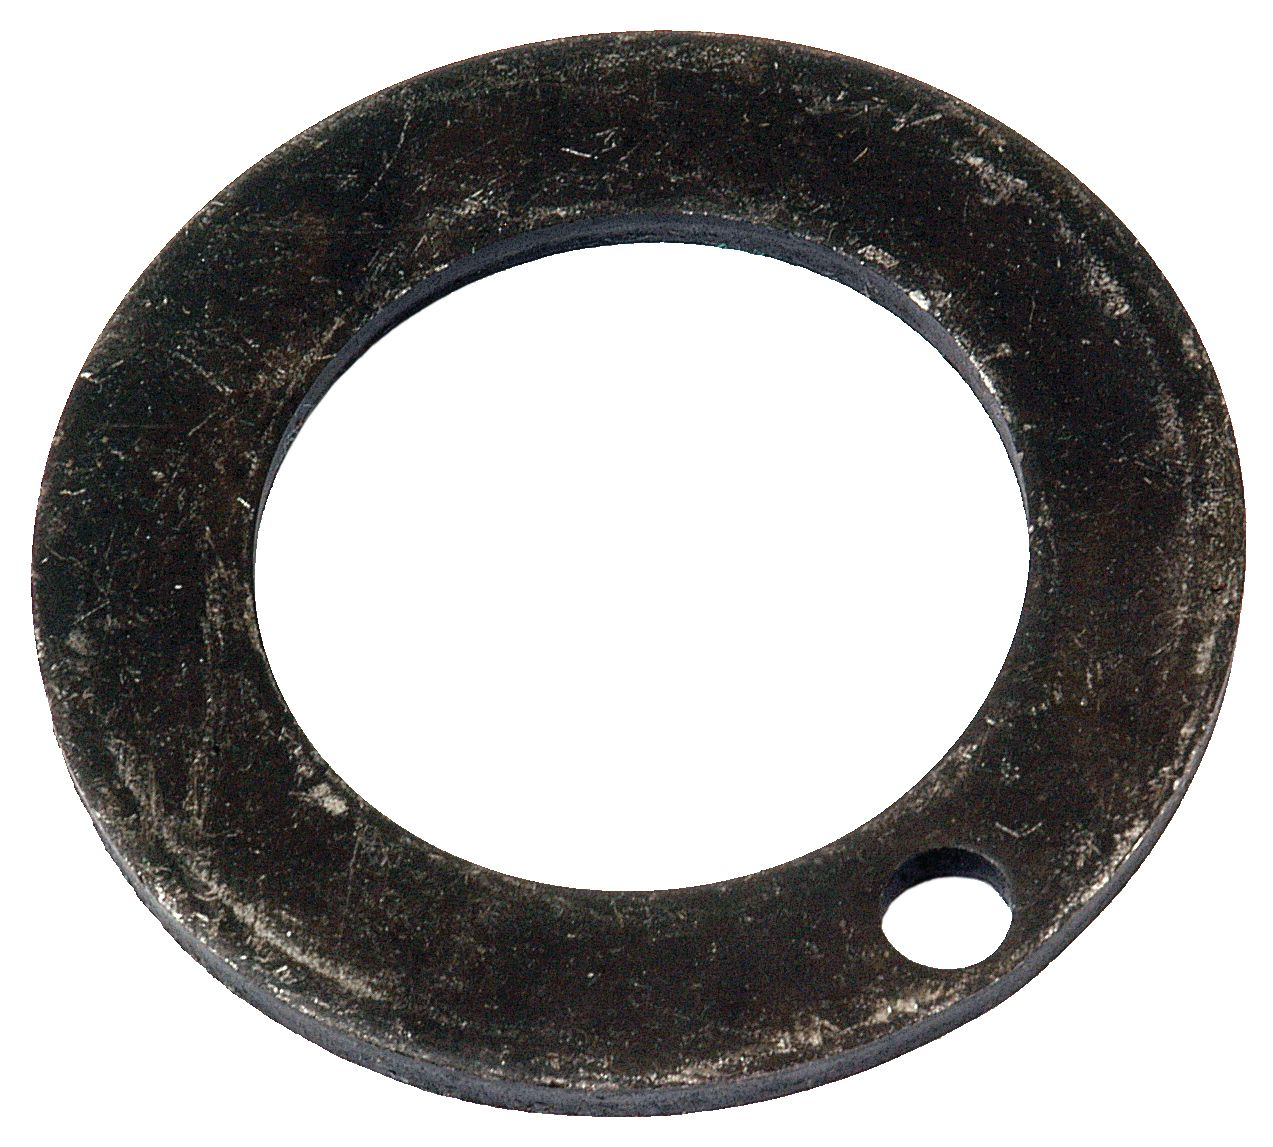 ALLIS CHALMERS THRUST WASHER 59023